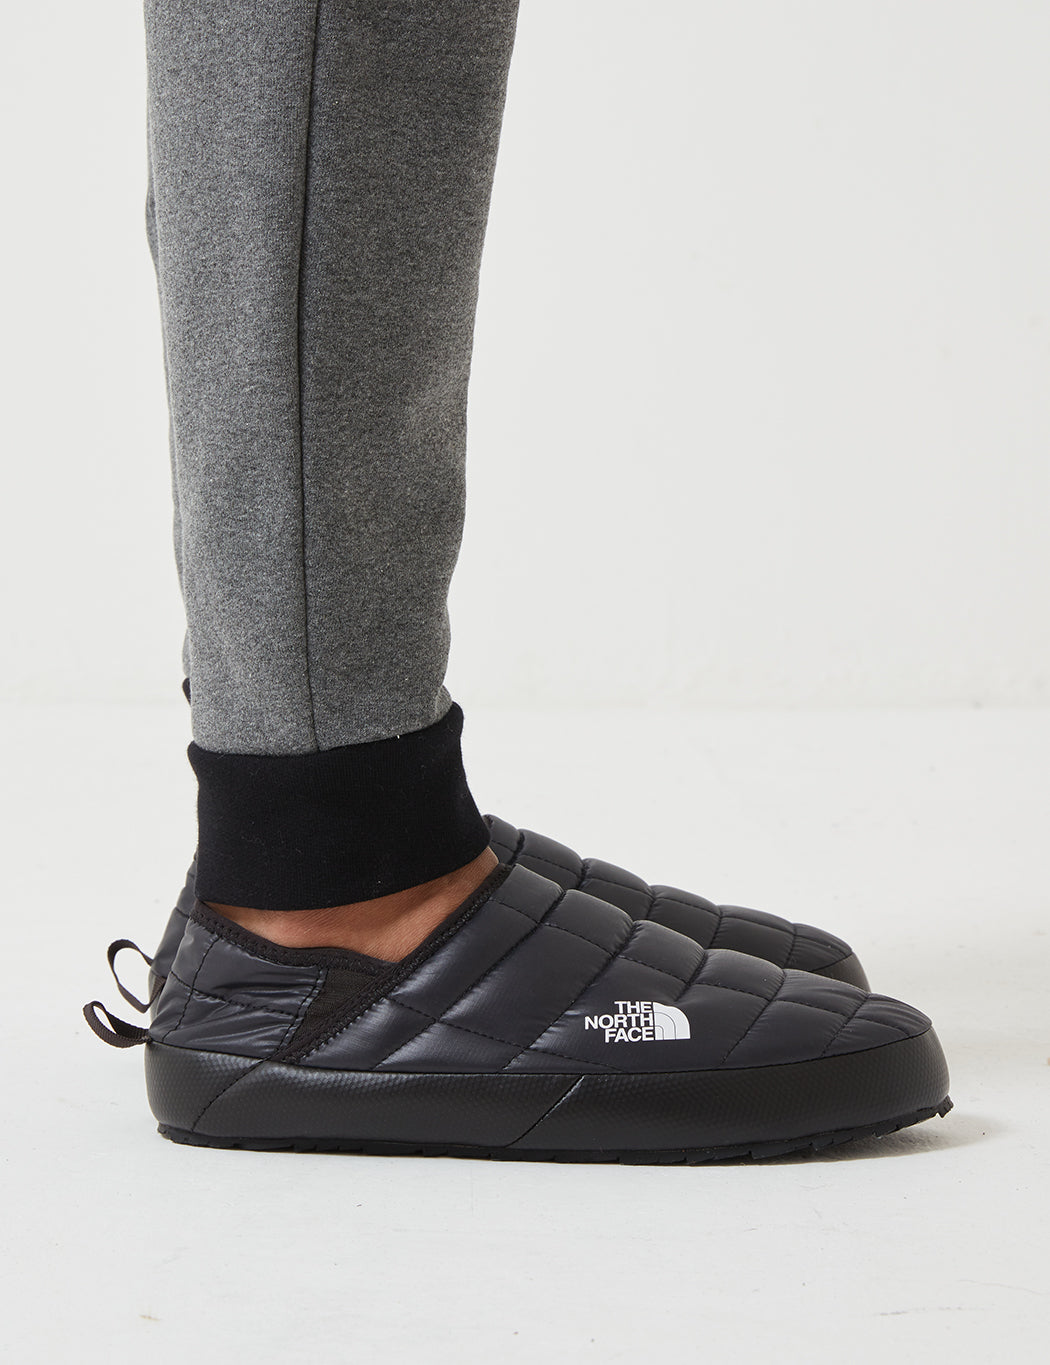 North Face Thermoball Traction Mule V - Black/White | URBAN EXCESS.